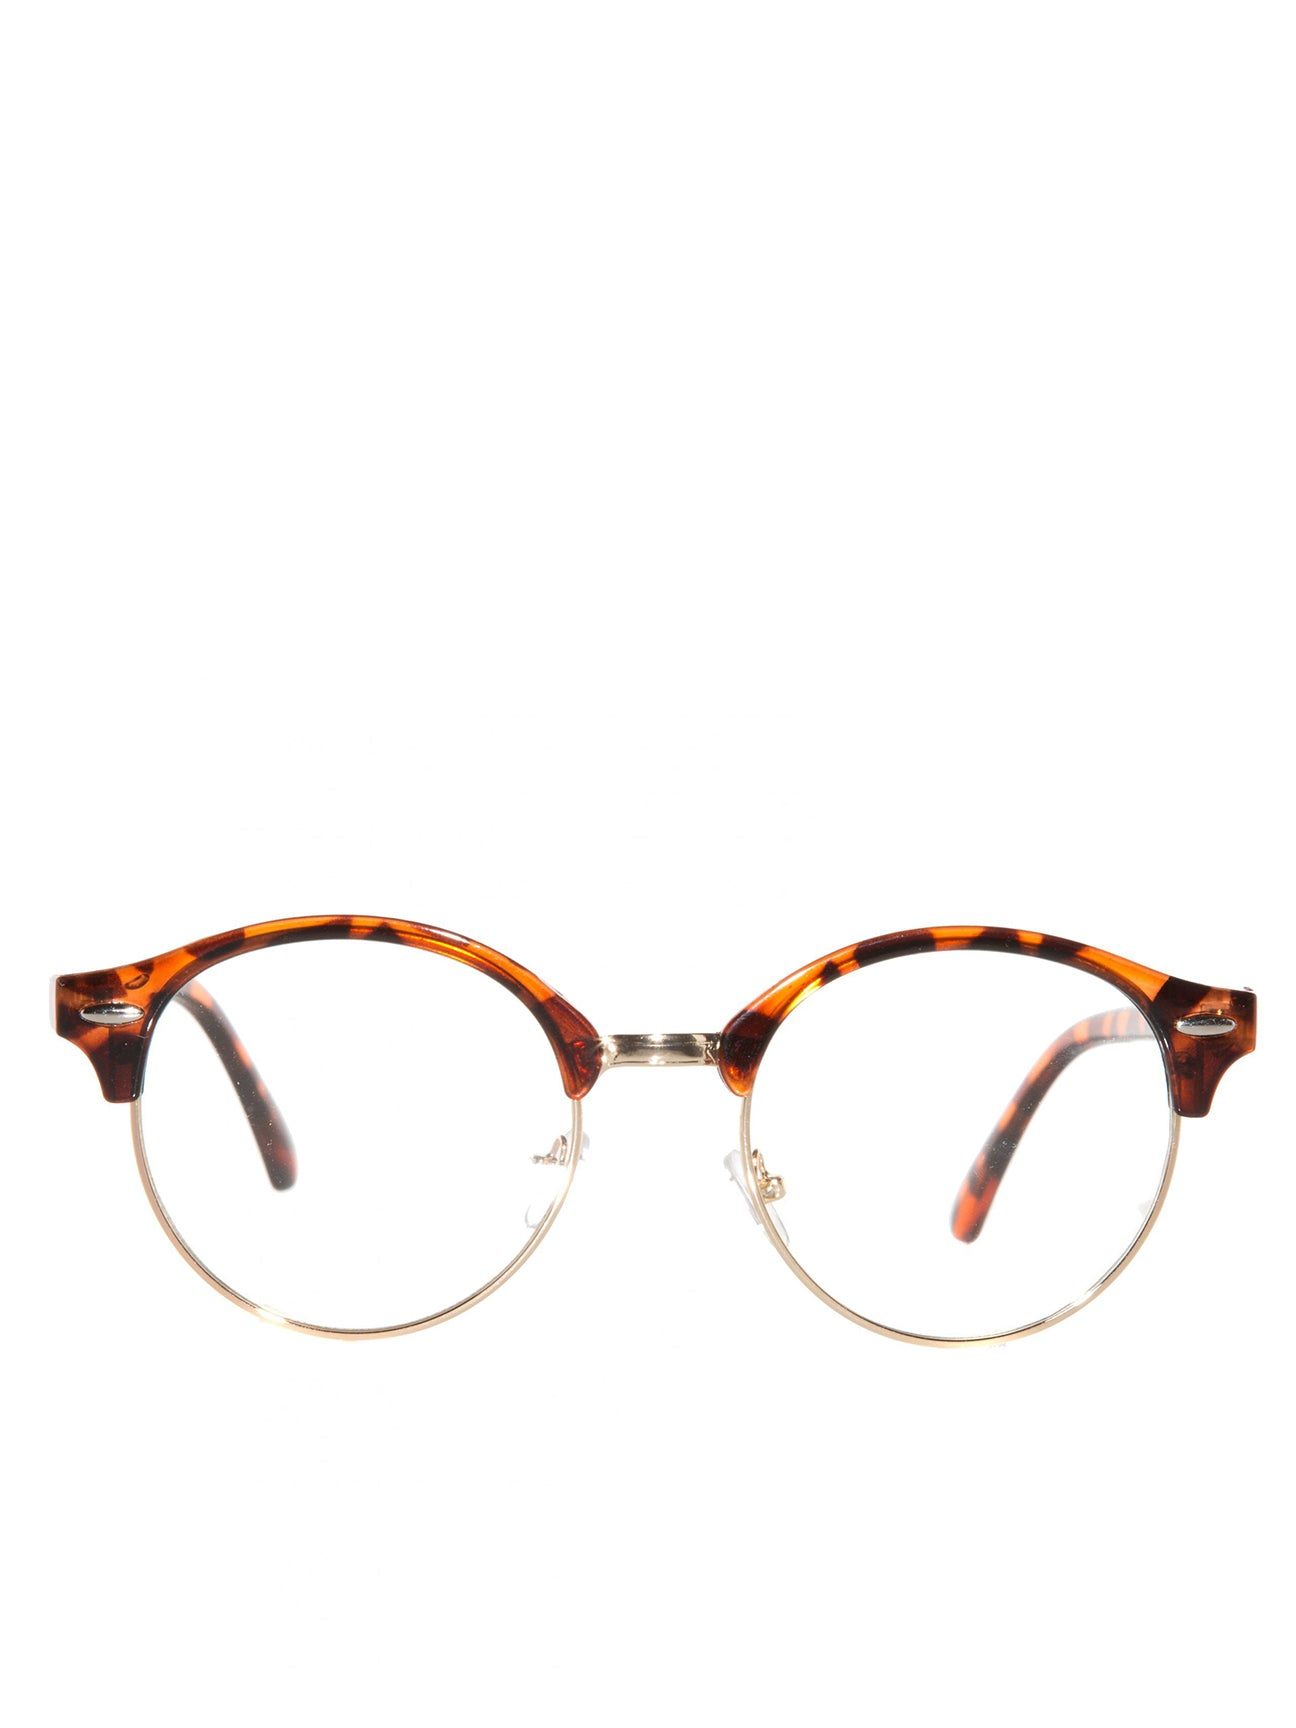 Round Tortoise Shell Half Frame Sunglasses With Clear Lenses